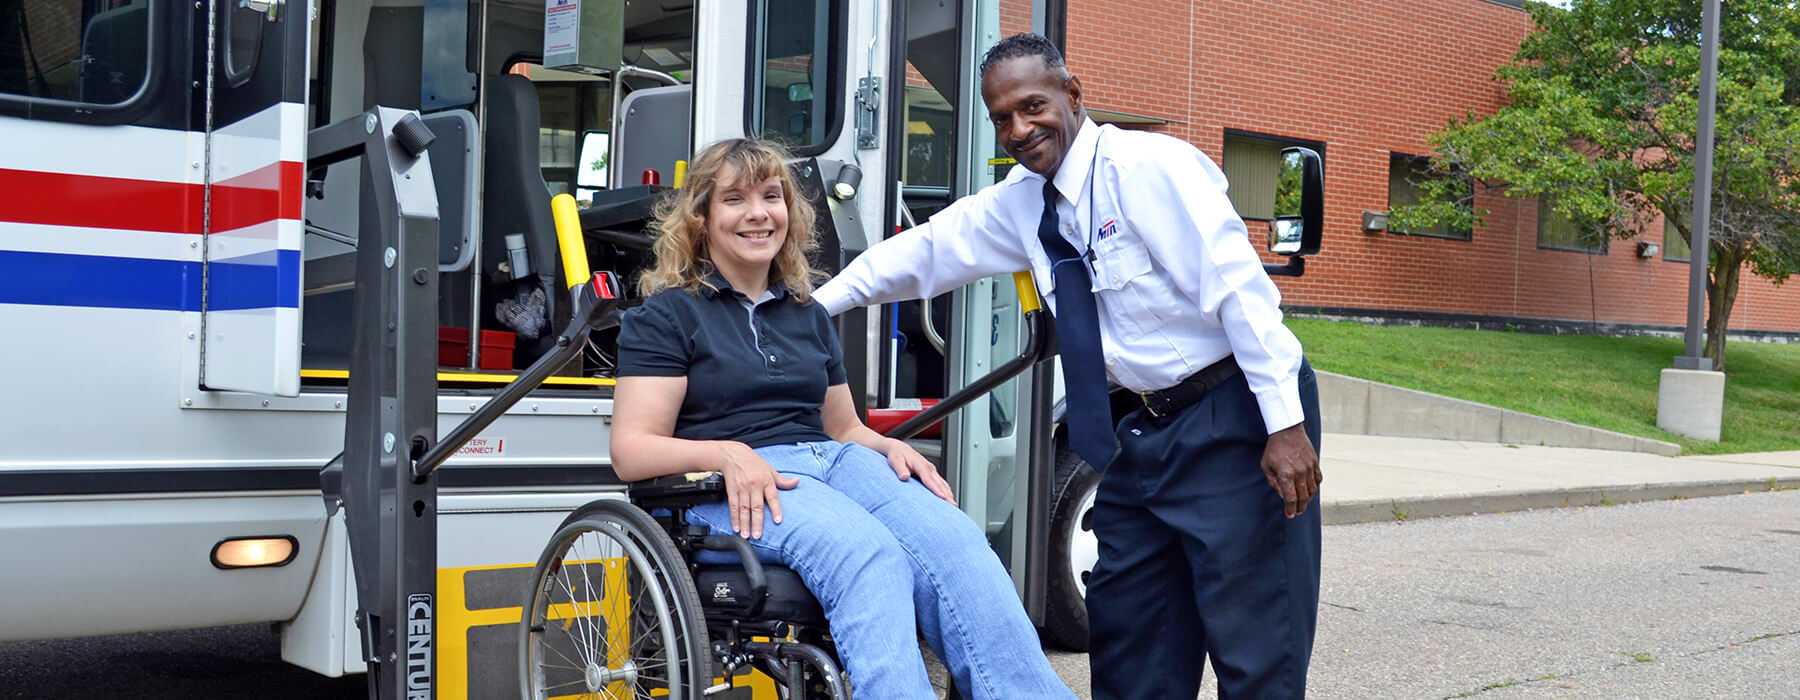 Woman in wheelchair exiting Your Ride bus using the wheelchair lift assisted by the driver.